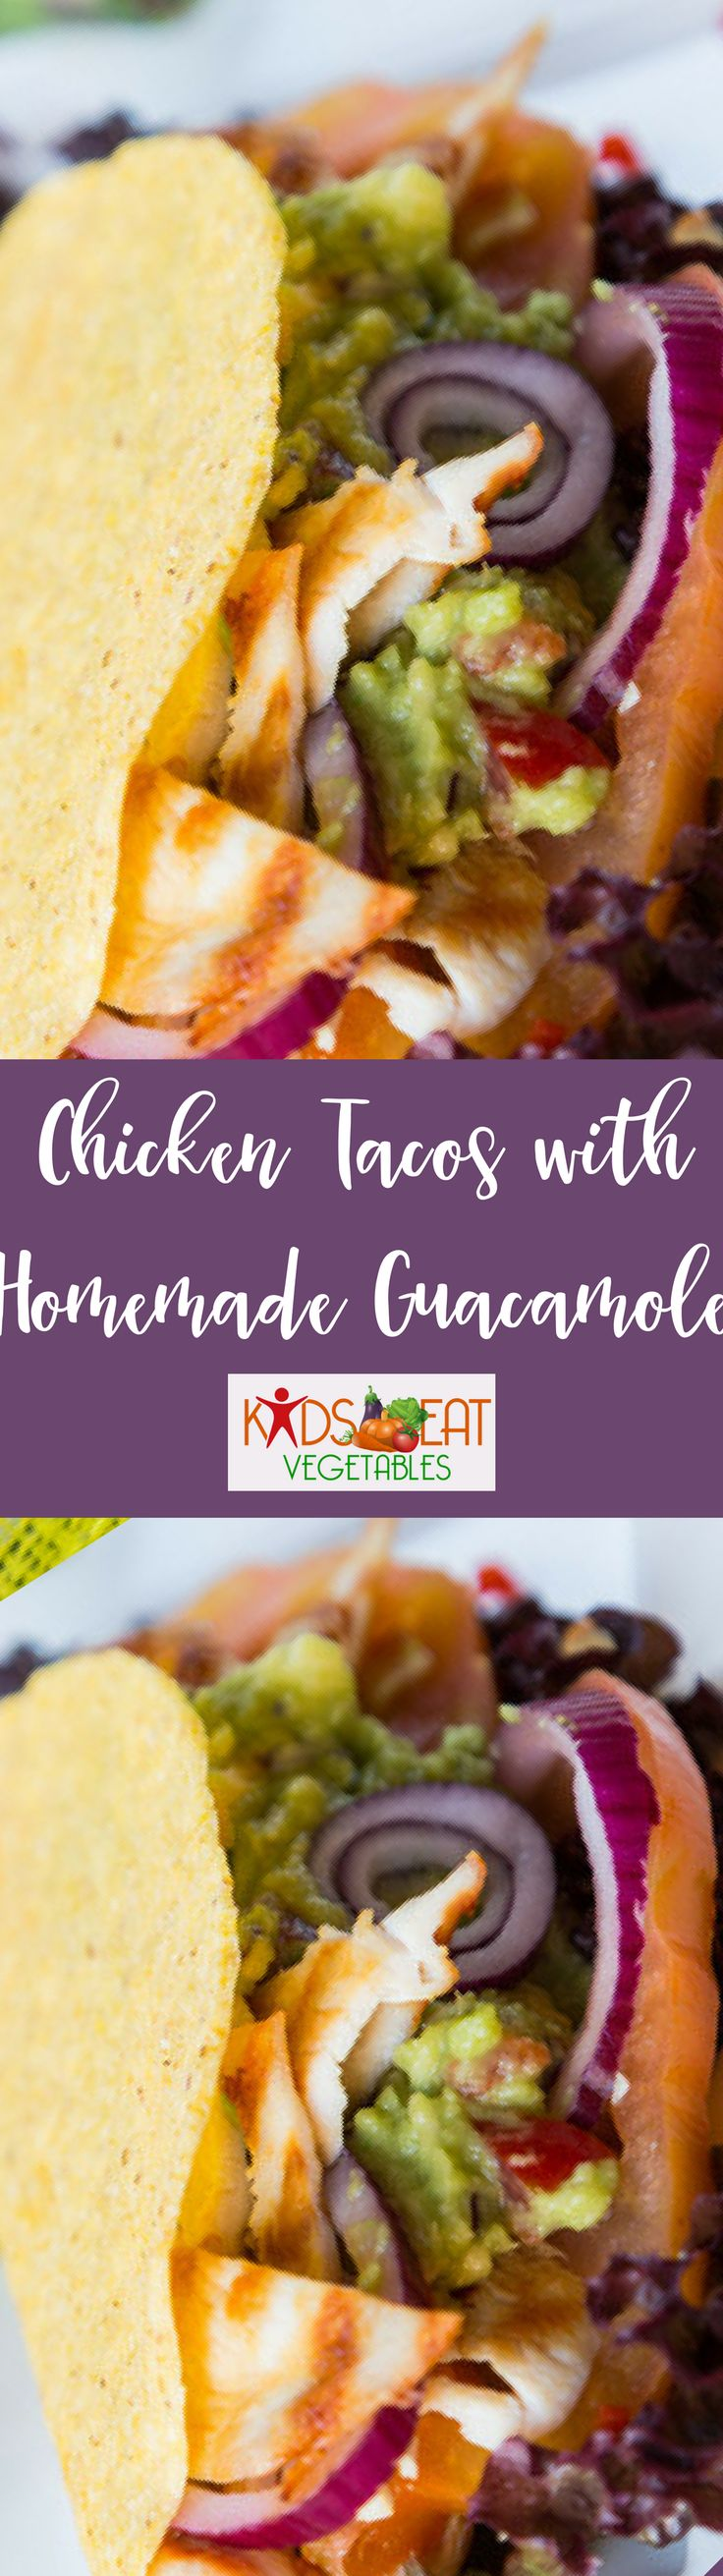 Chicken tacos are a healthy and kid friendly dinner that delivers a lot of flavor. A crispy taco shell is the perfect vessel for juicy chicken with a hint of spice. Adding some lettuce and toppings like onions just enhance the experience while the guacamole is the ideal finish. It is cool, creamy, has that vibrant green hue and the citrus adds some sweet acidity to the mix. On top of that, the guacamole brings the nutrition value. Avocados are packed with healthy fat, vitamins, and…